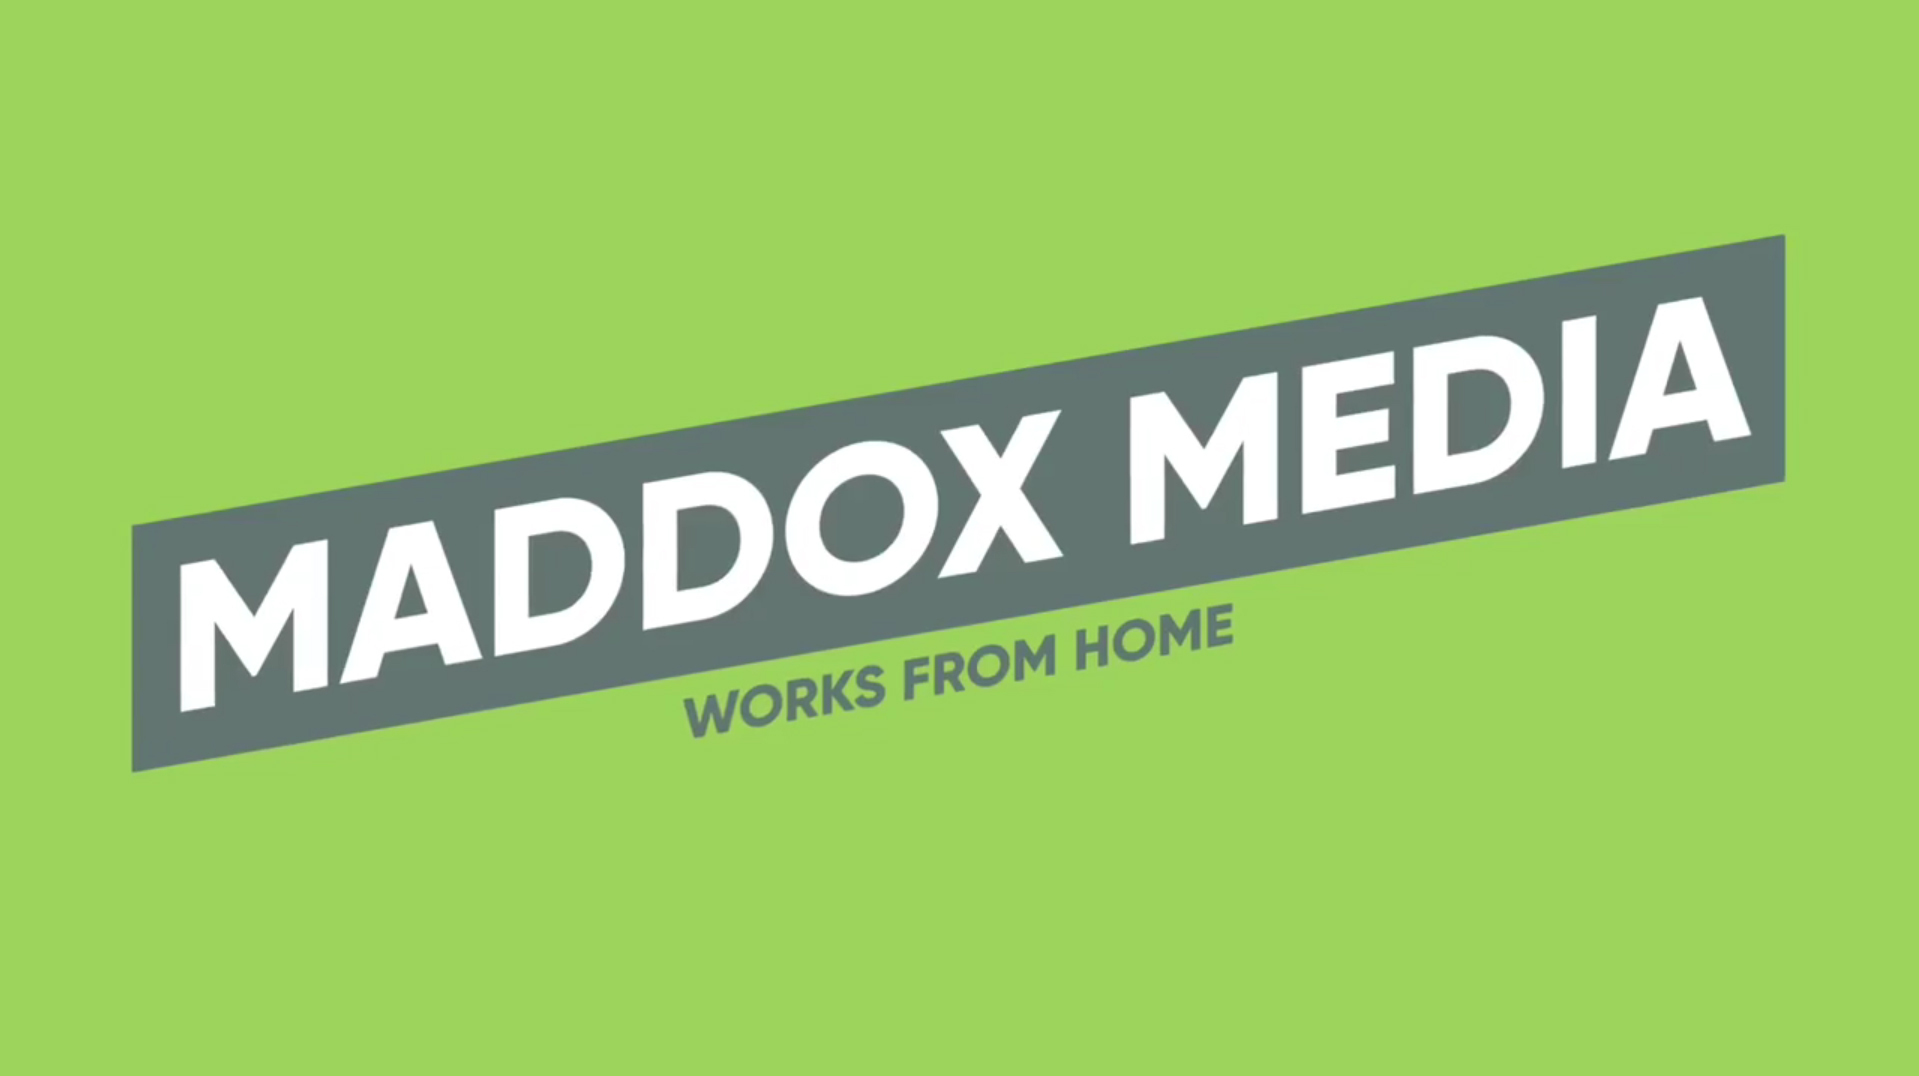 Maddox Media Works From Home